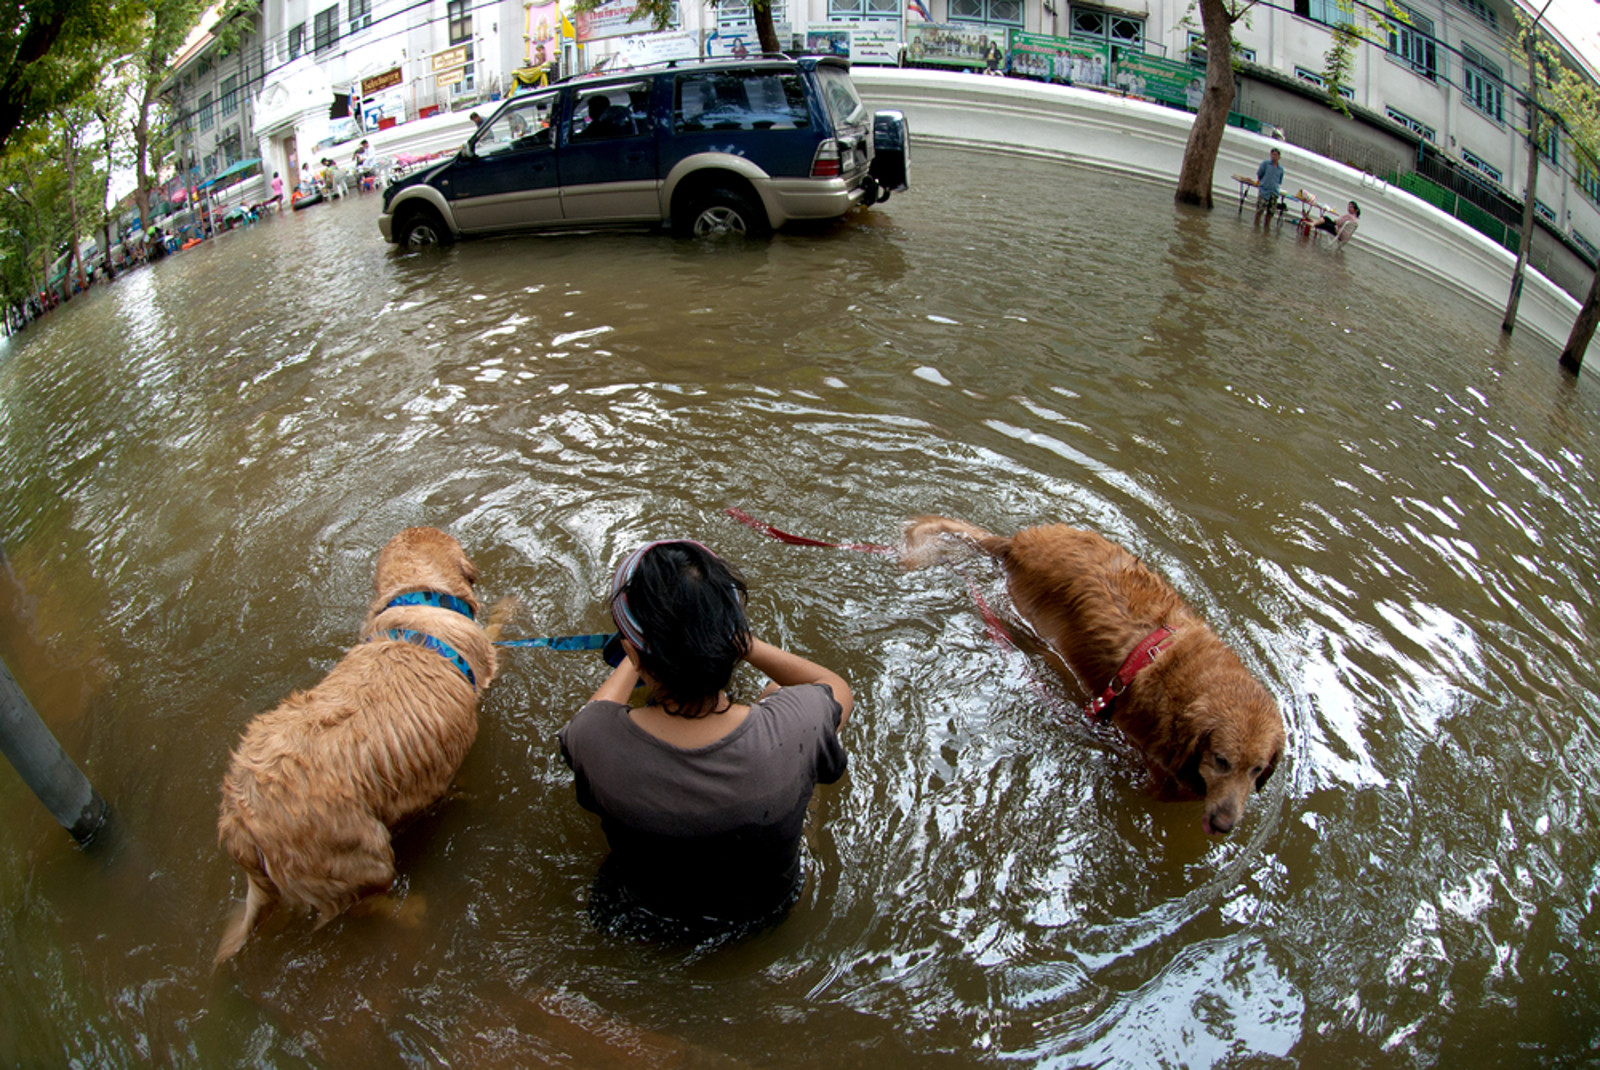 5 Tips That Could Save Your Pet in Case of a Natural Disaster